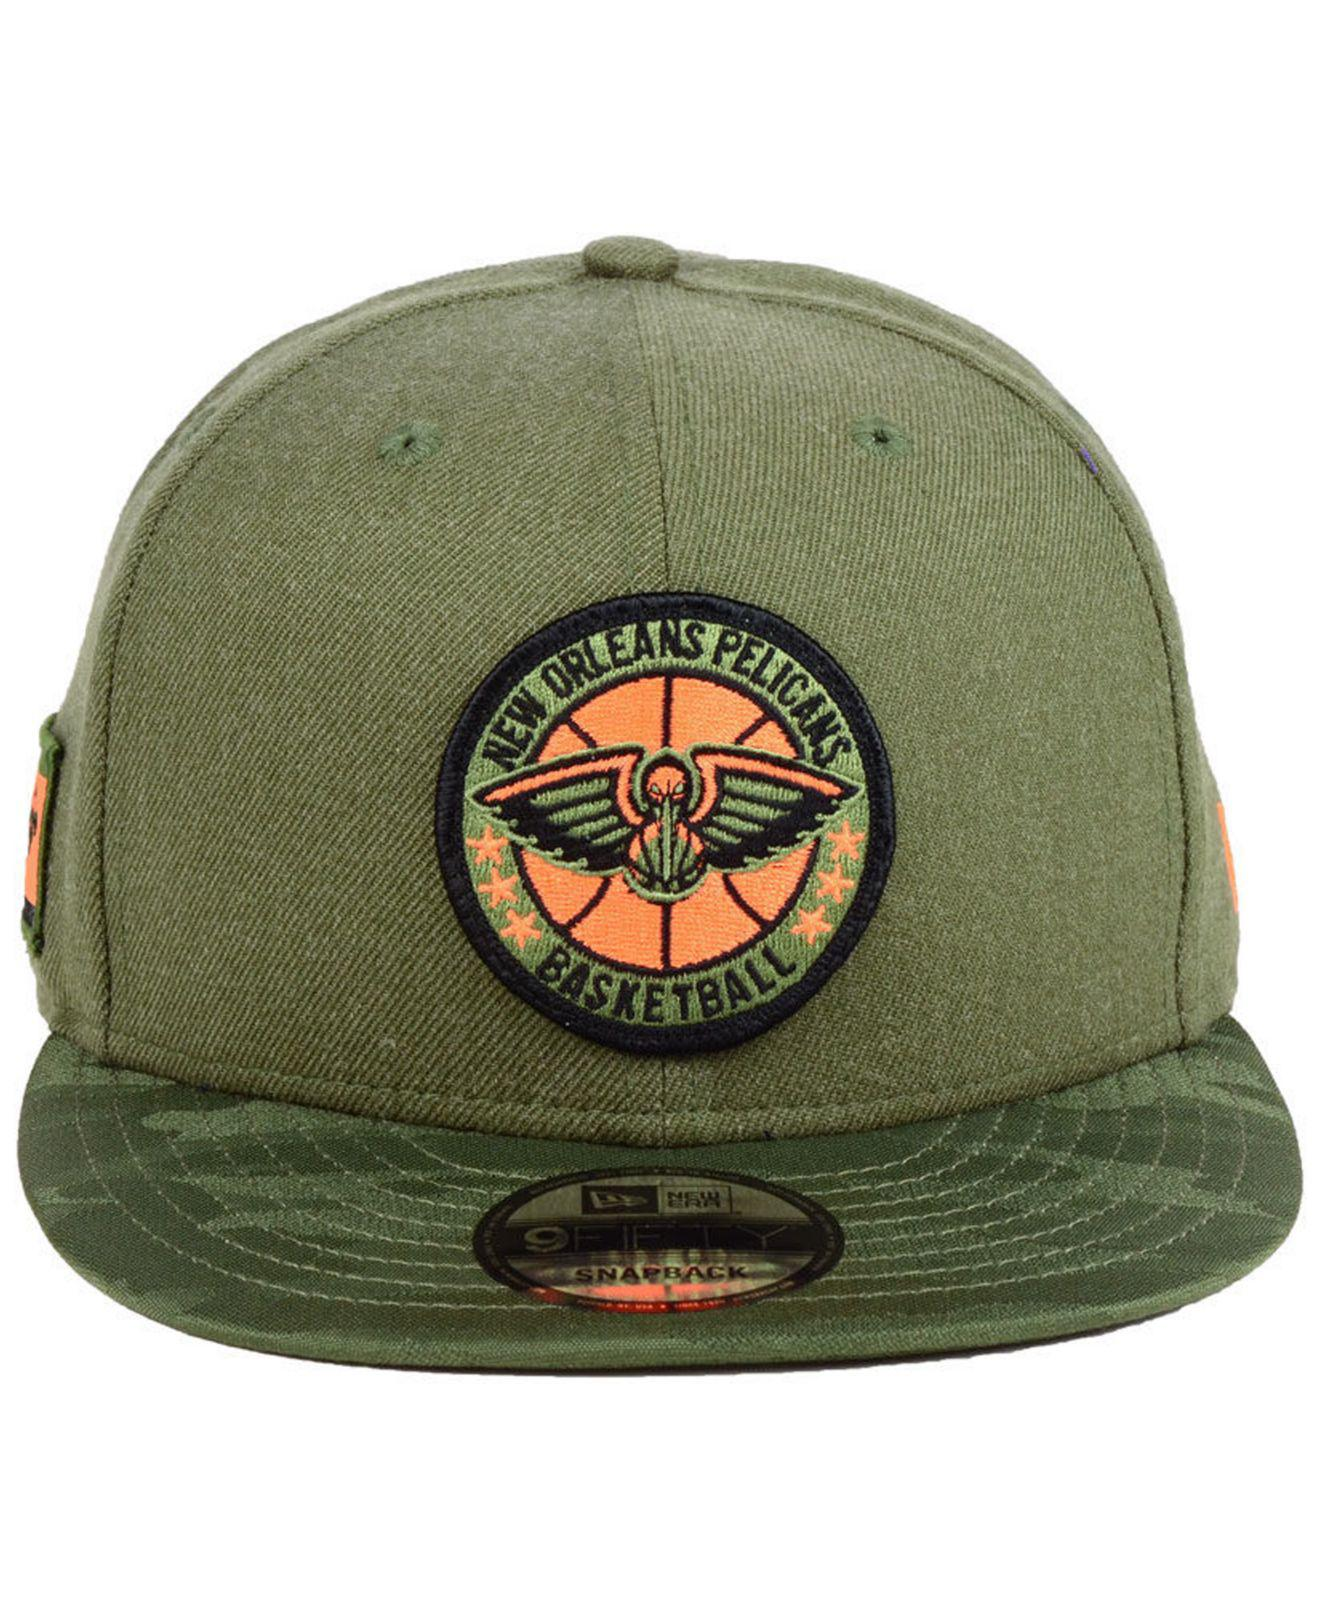 premium selection 50342 41052 Lyst - KTZ New Orleans Pelicans Tip Off 9fifty Snapback Cap in Green for Men